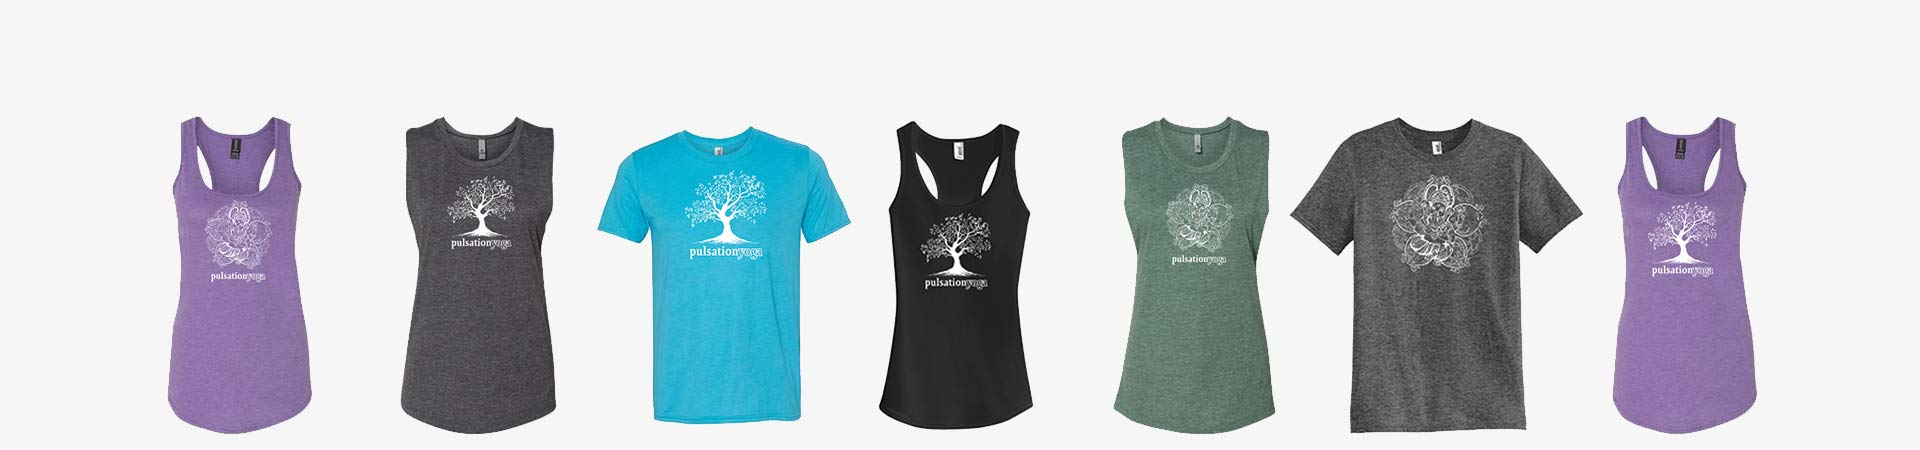 t-shirt styles showing tank, t-shirt and muscle shirts